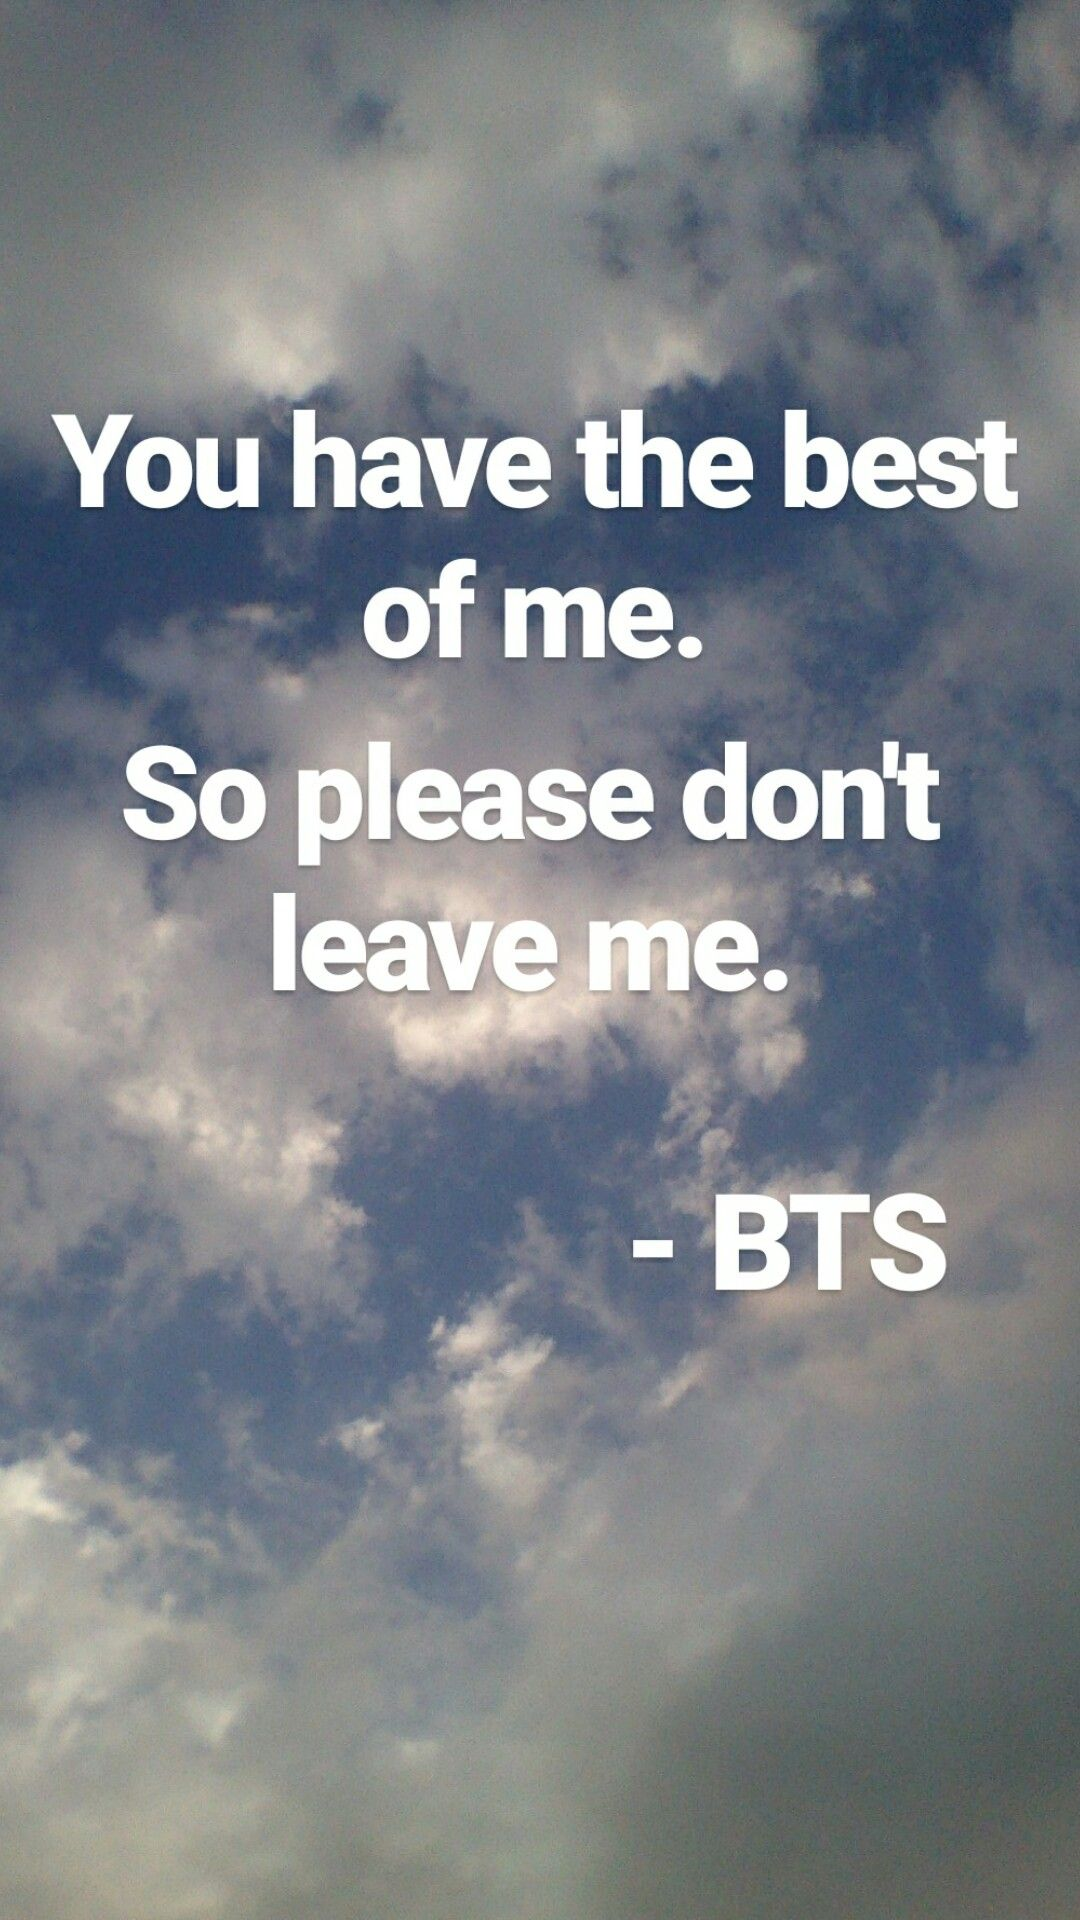 You Have The Best Of Me Son Please Dont Leave Me Bts Fondos